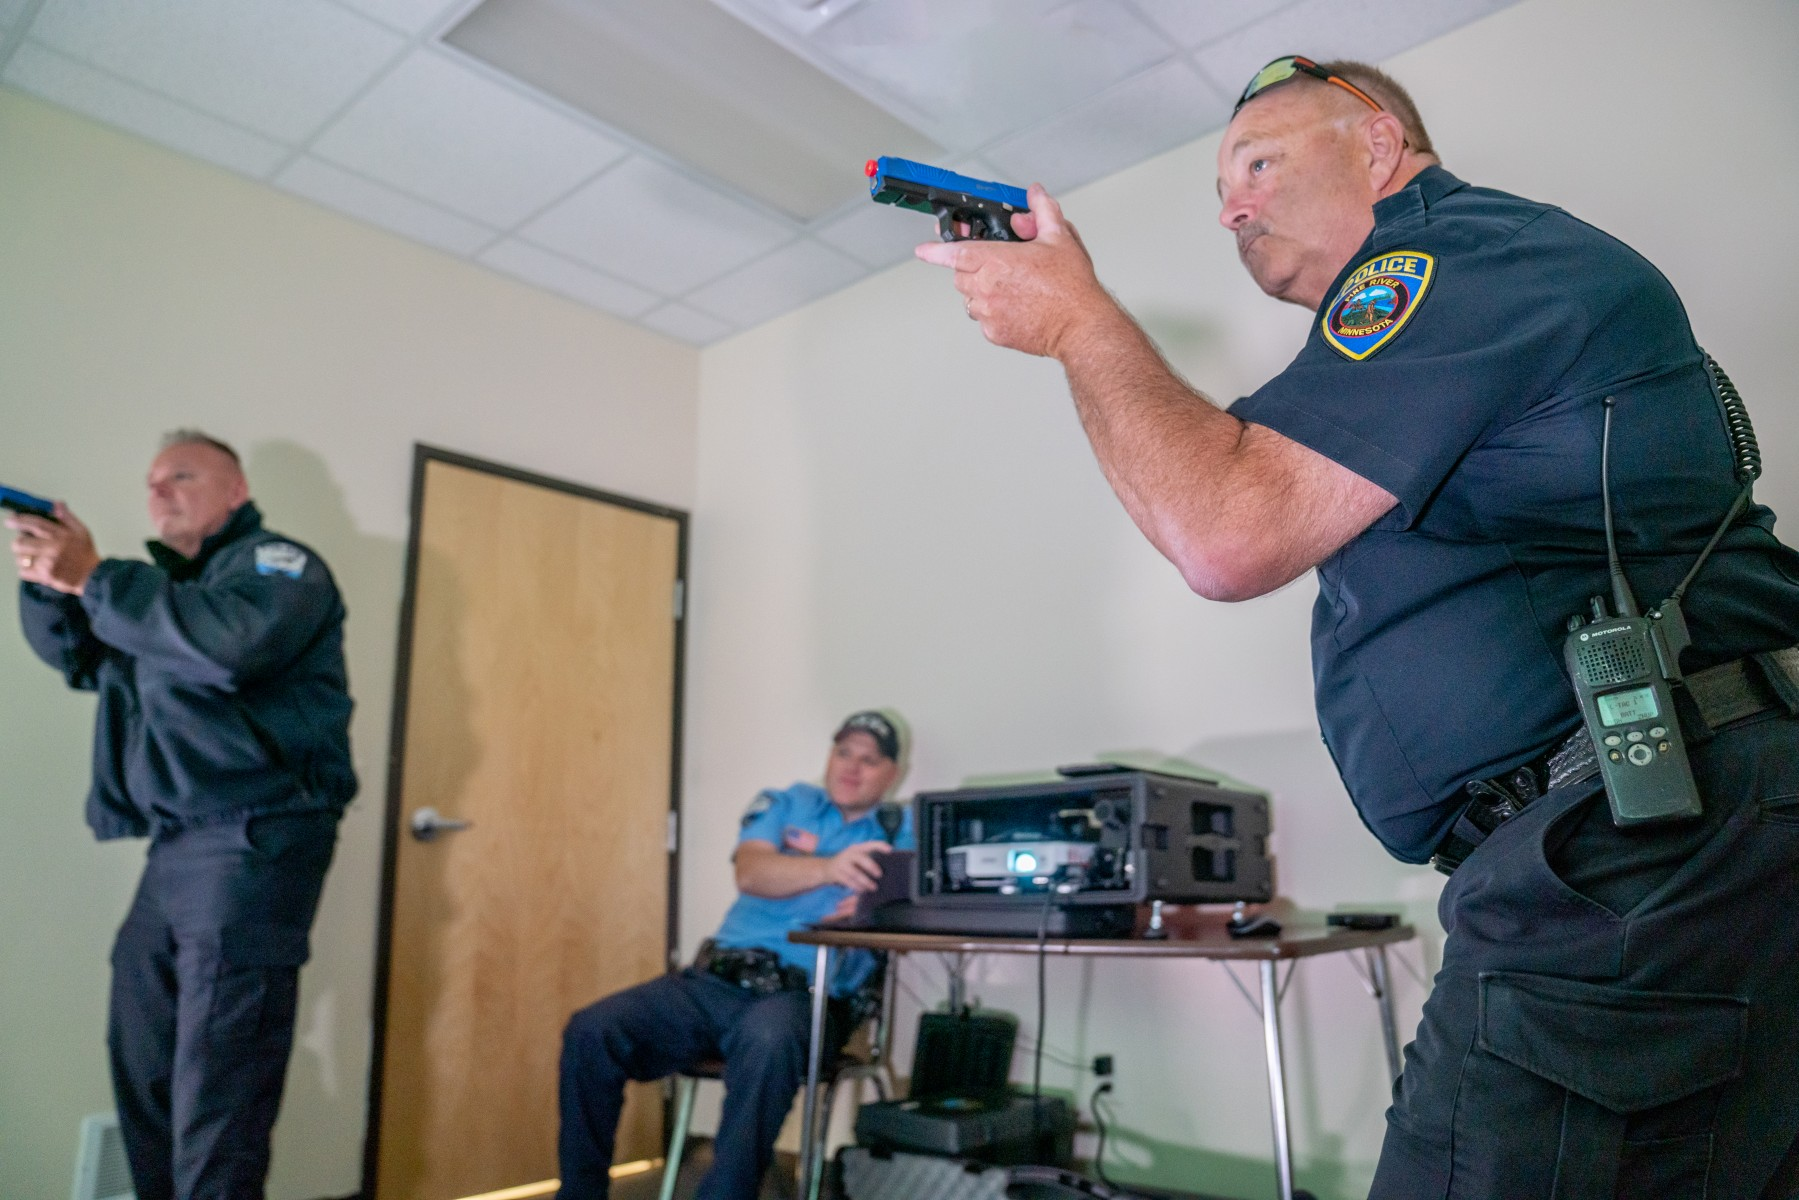 Walker Police Chief Wayne Tennis (left) and Pine River Police Chief Paul Sand train with the Laser Shot Simulator, equipment purchased with Innovation Funding dollars.